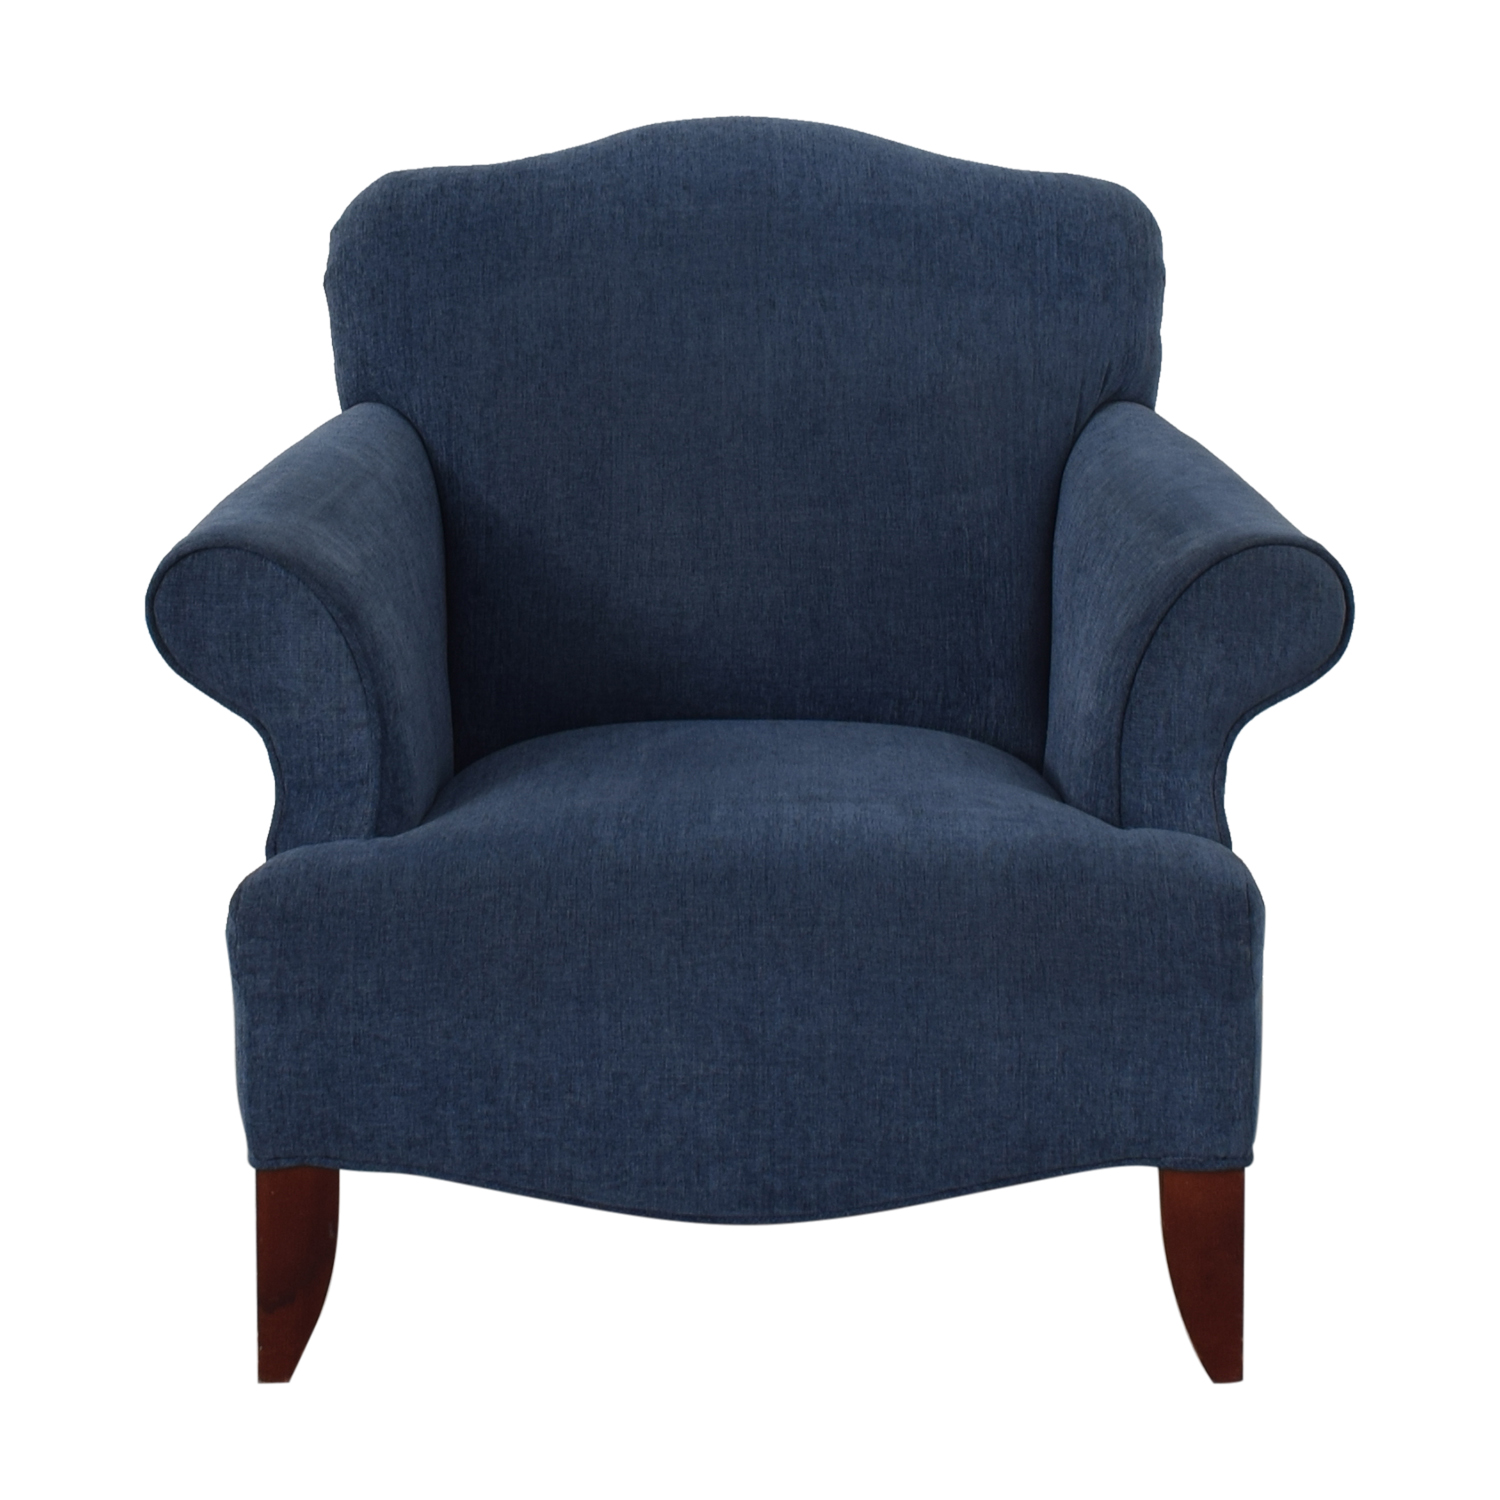 Upholstered Arm Chairs 87 Off Blue Upholstered Arm Chair Chairs